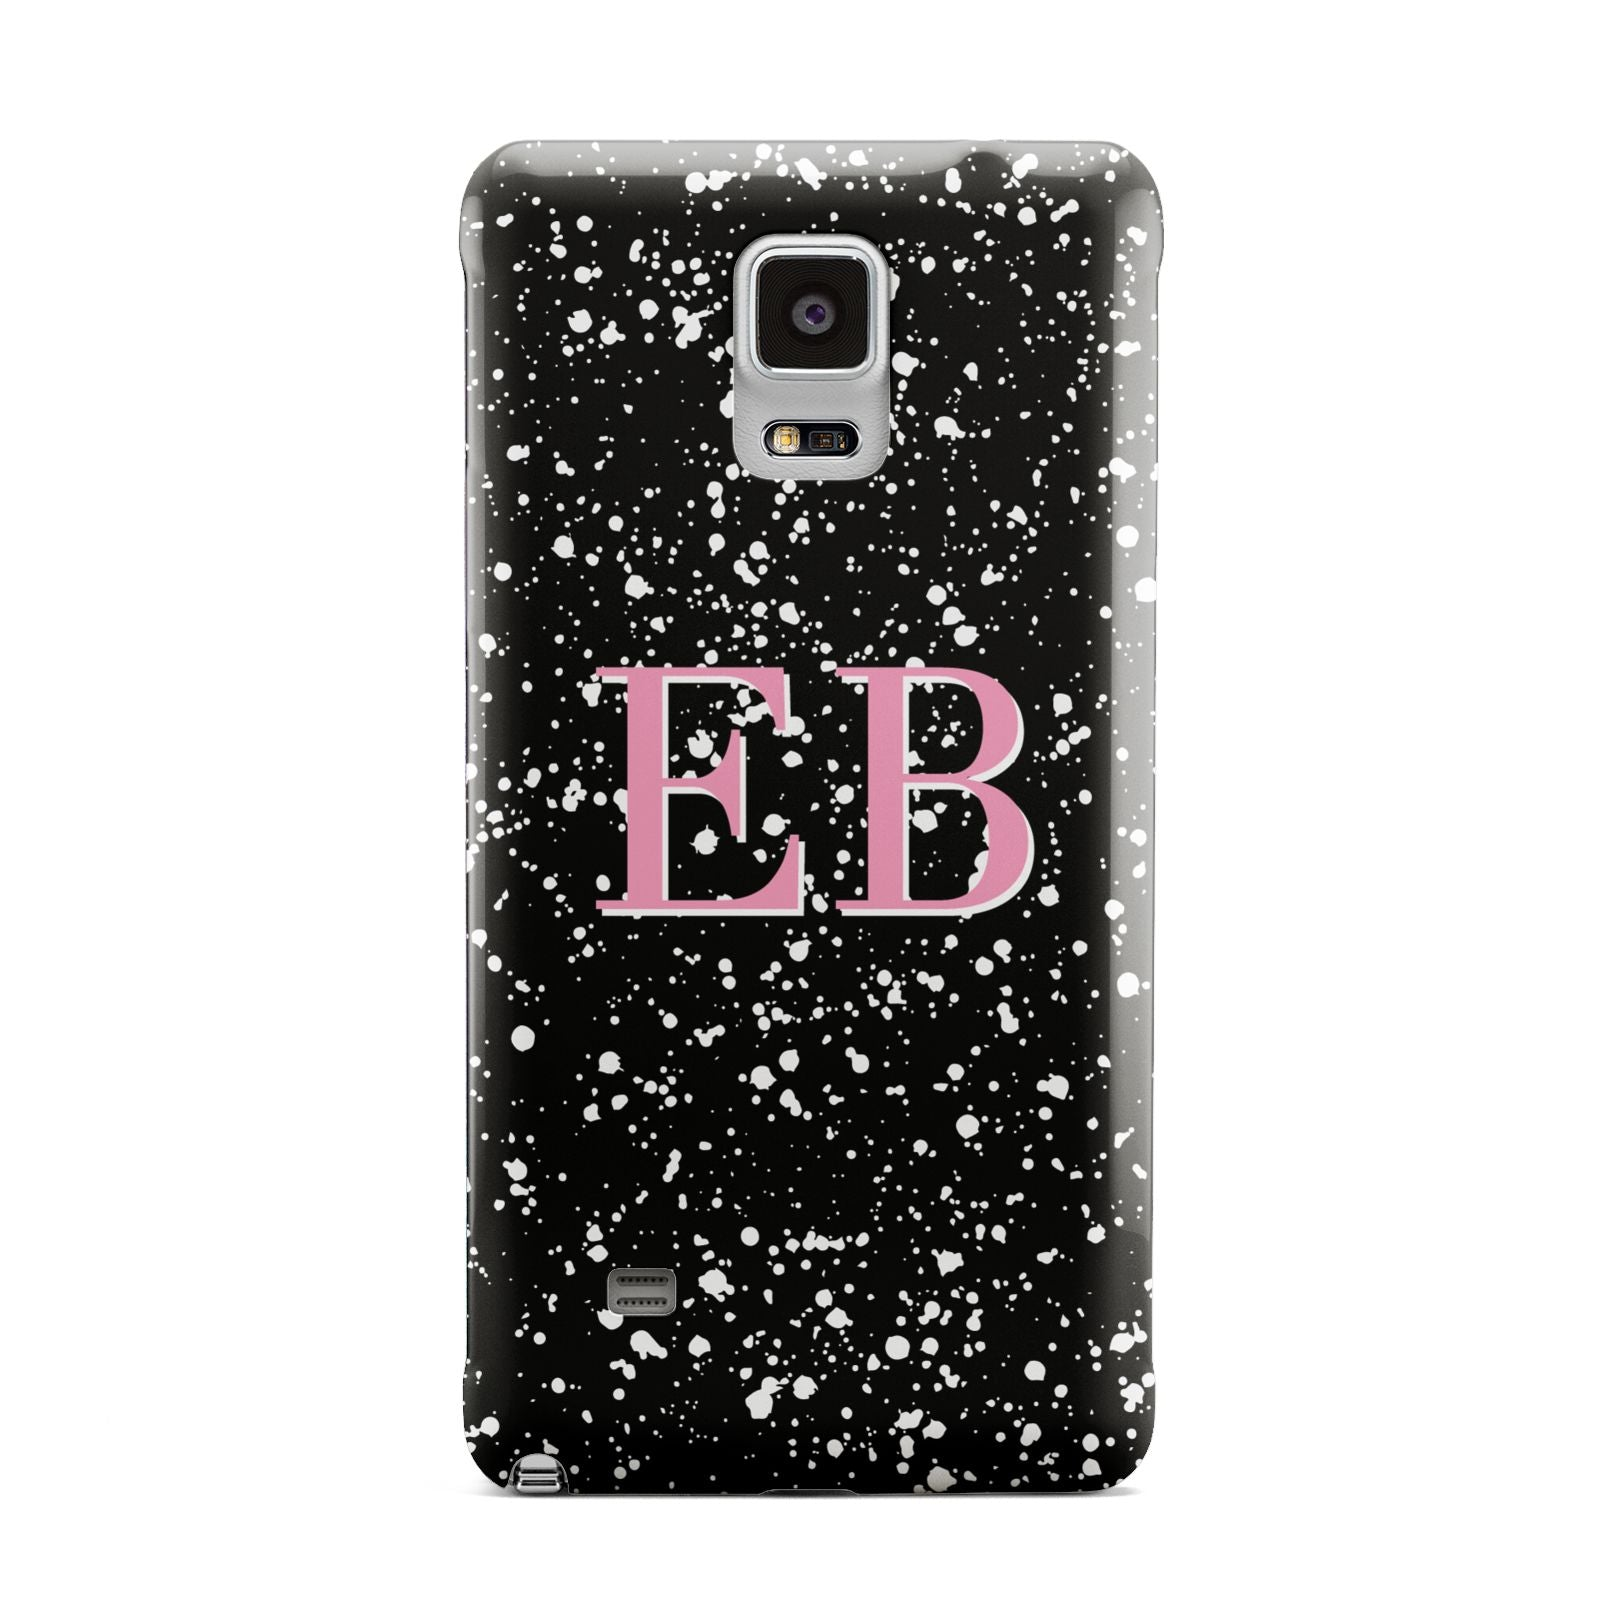 Personalised Black Ink Splat Initials Samsung Galaxy Note 4 Case